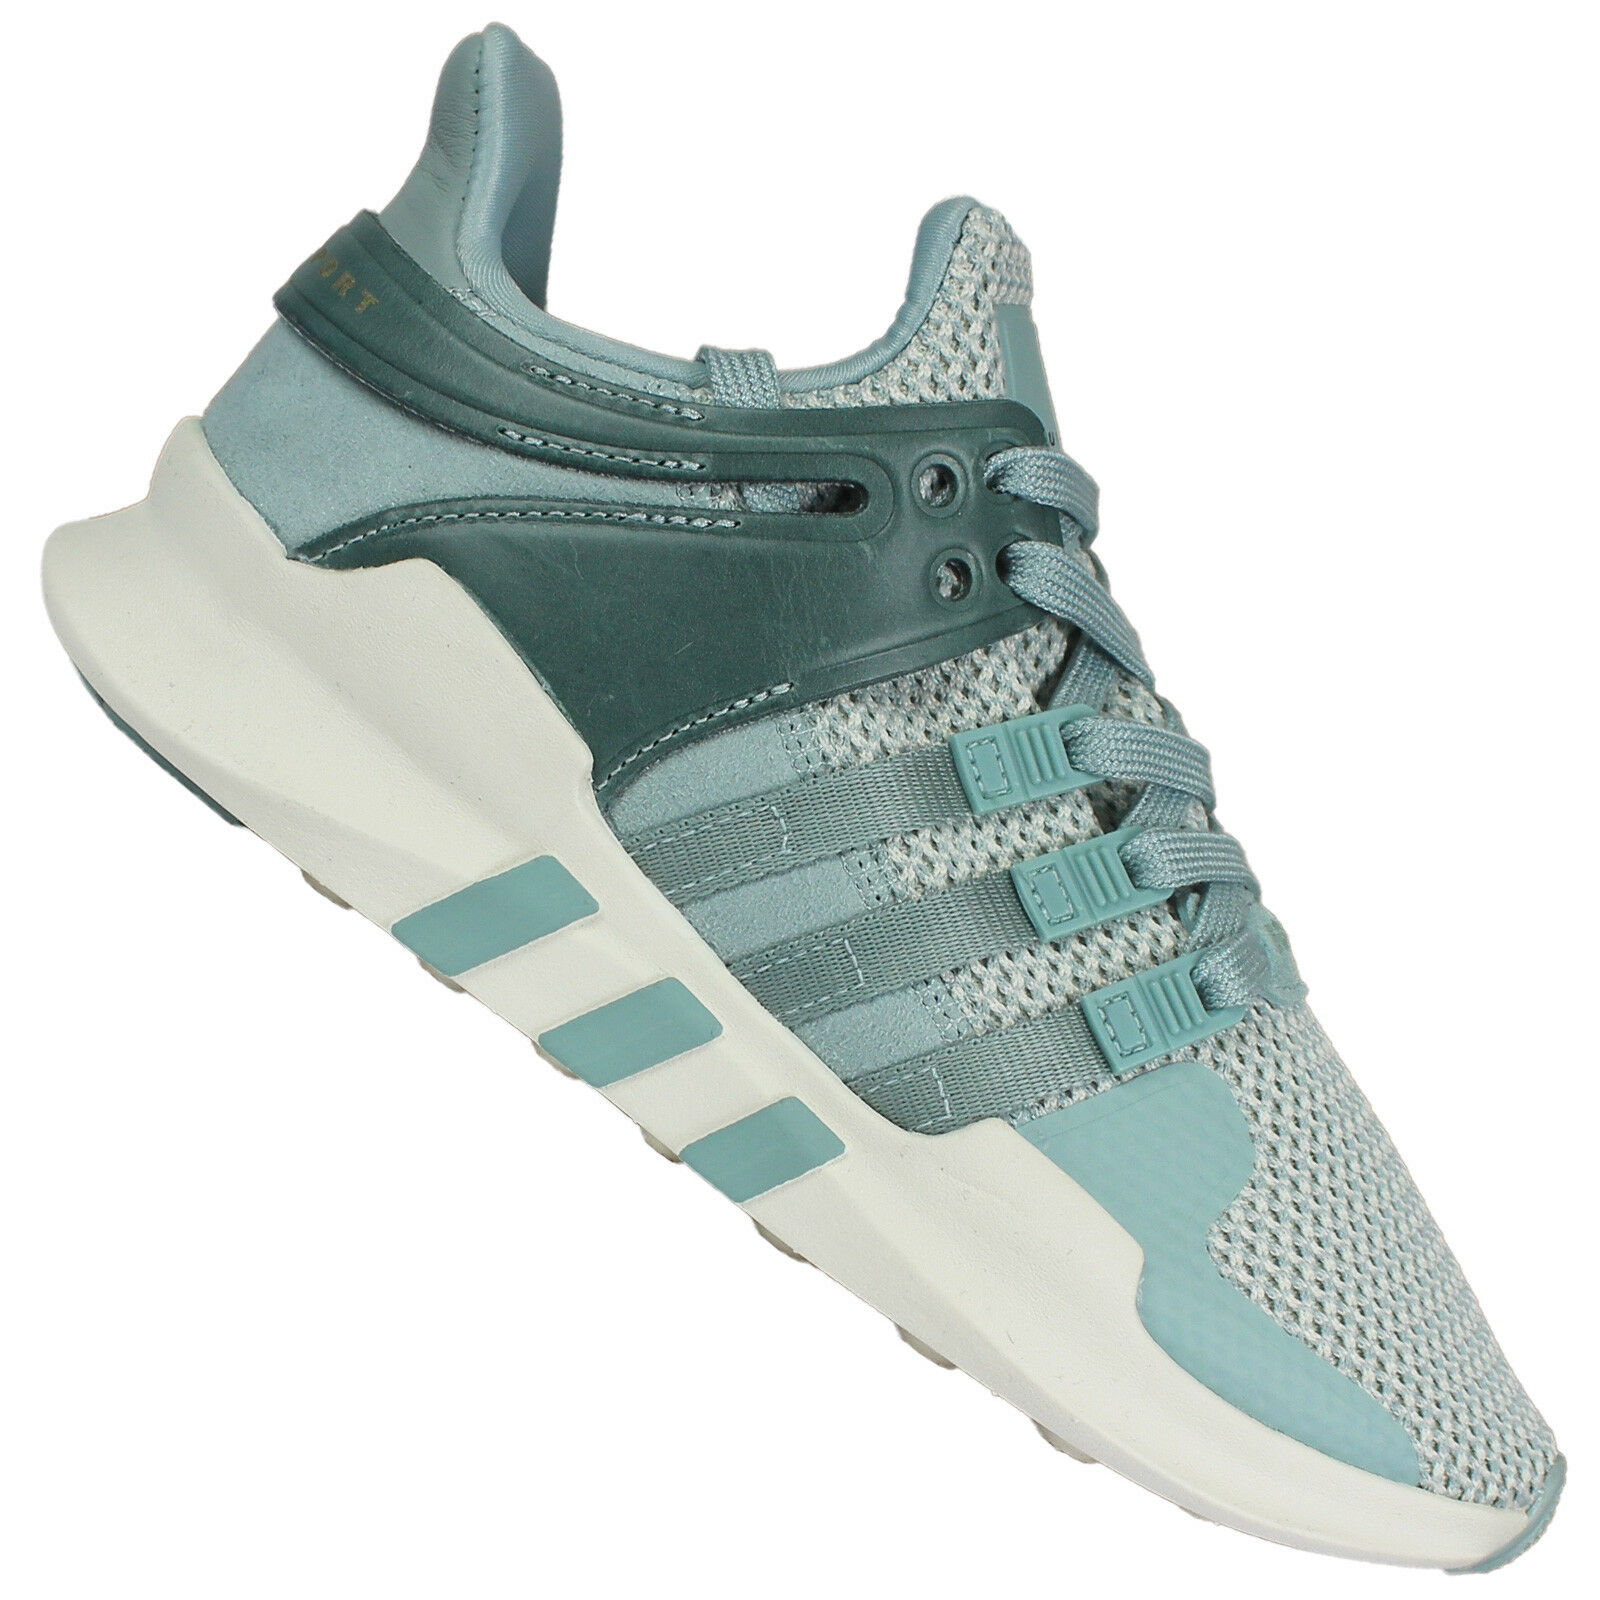 ADIDAS ORIGINALS EQT EQUIPMENT SUPPORT ADV RUNNING SCHUHE LAUFSCHUHE grey green